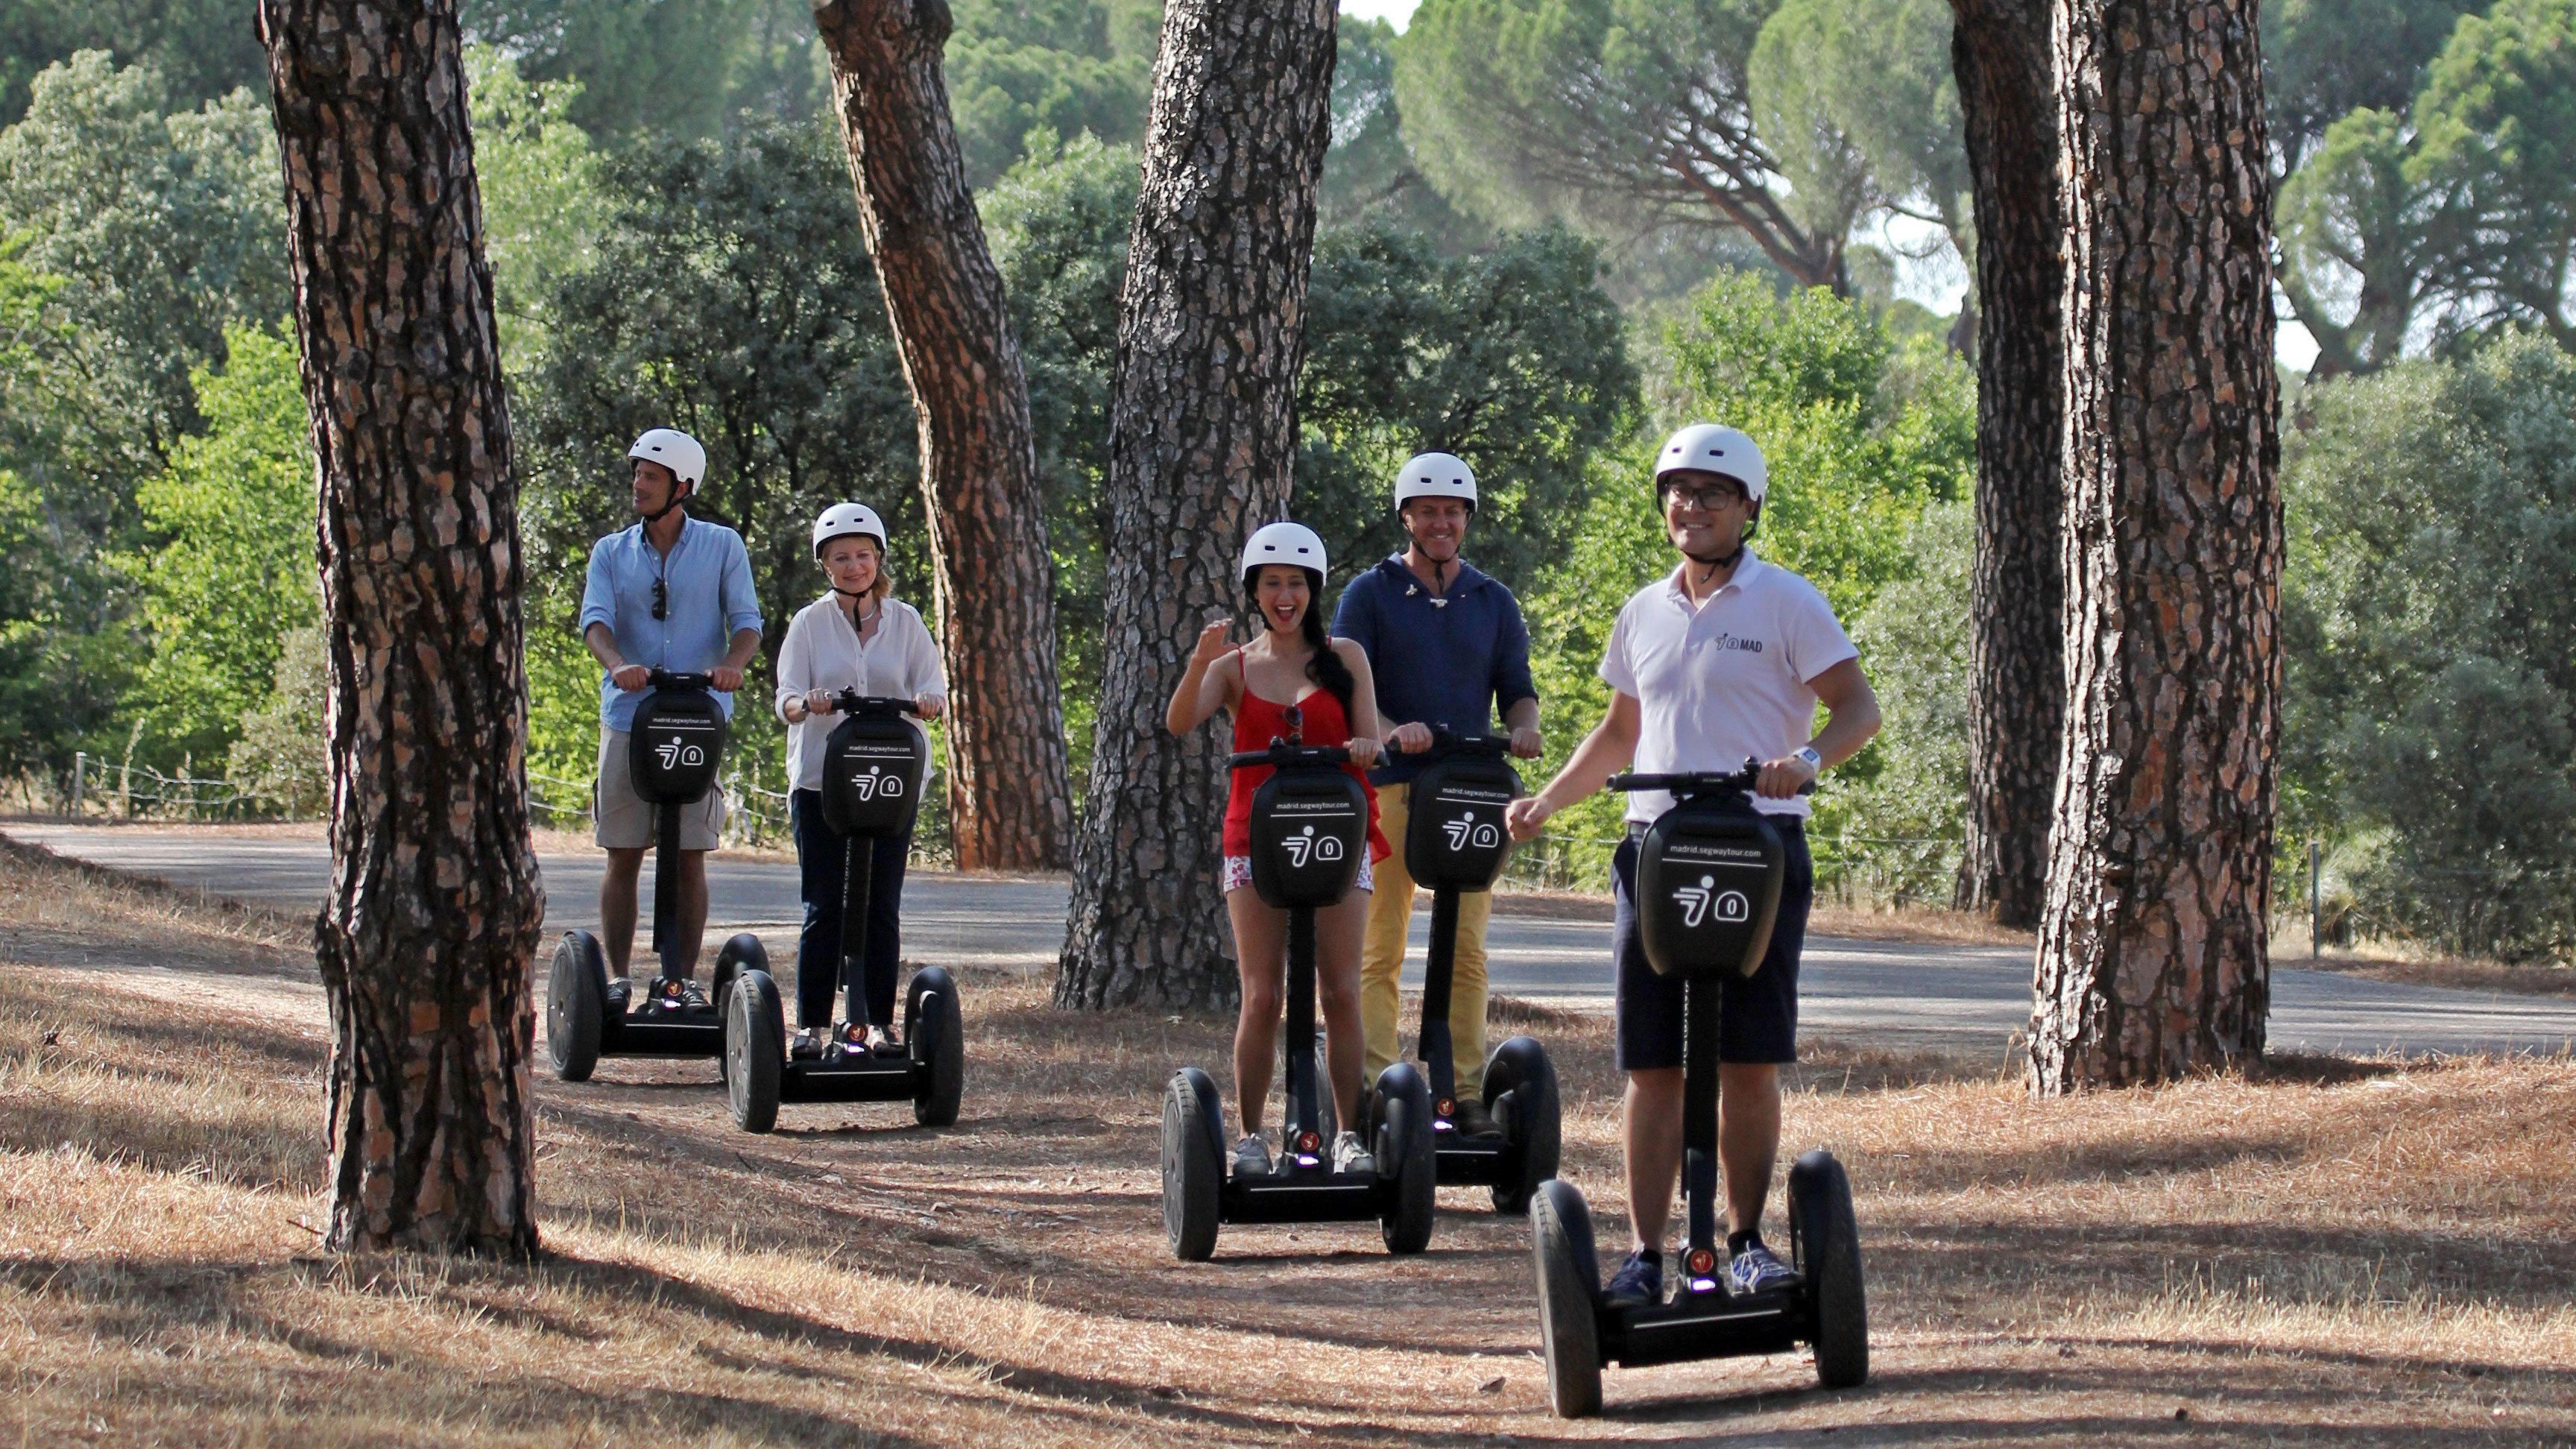 Segway group on a path through the trees in Madrid